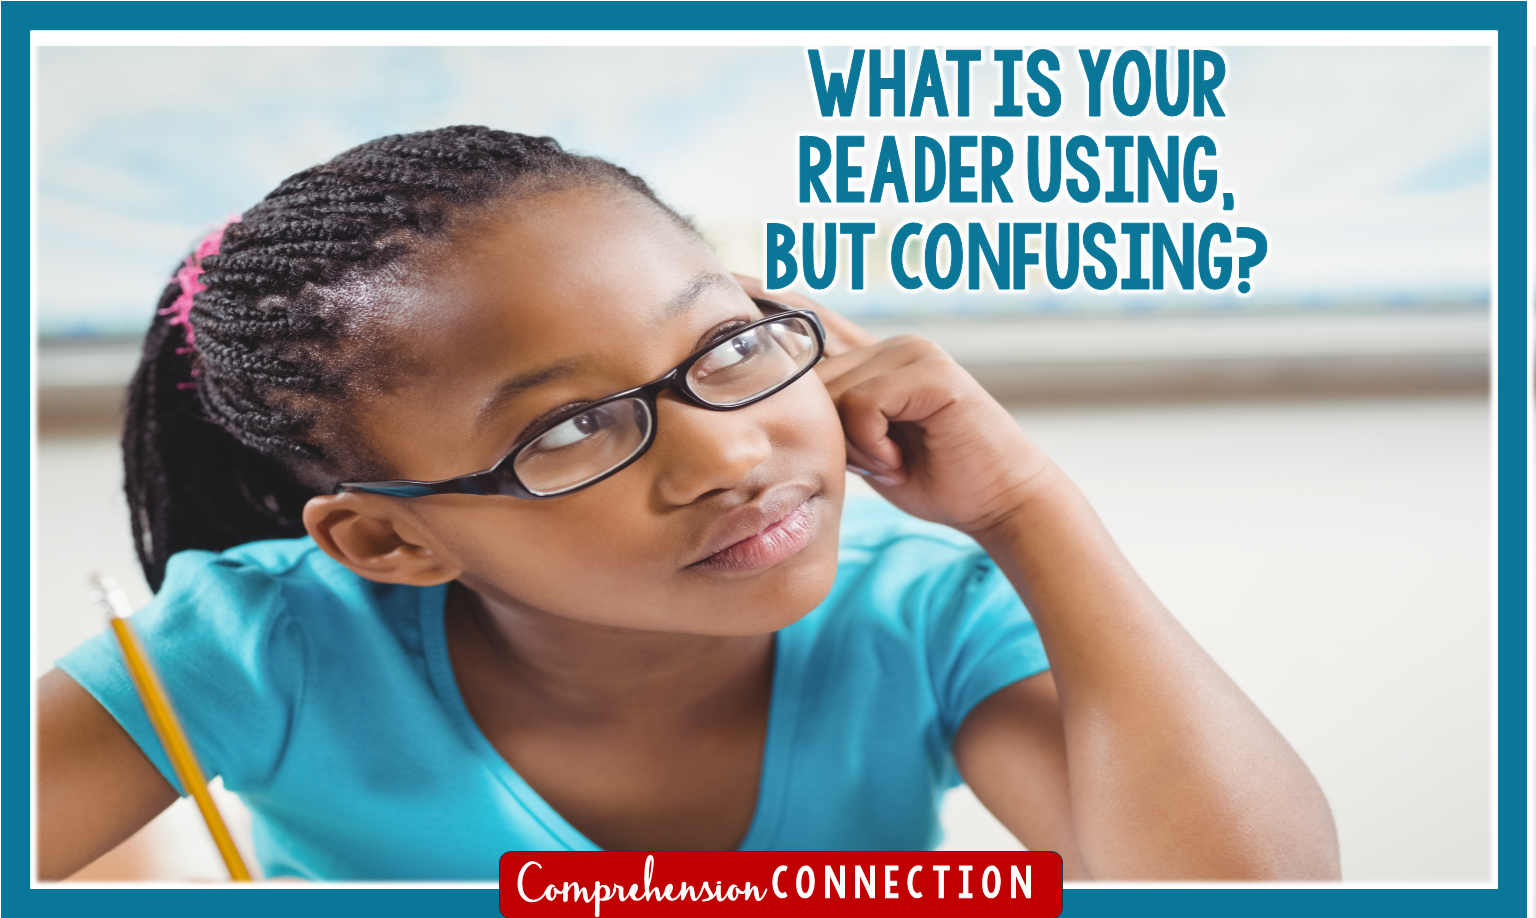 Do you know what to focus on with the readers in your classroom? Reading develops in stages, and there are certain reading behaviors look for. Check out this post to learn what they are.